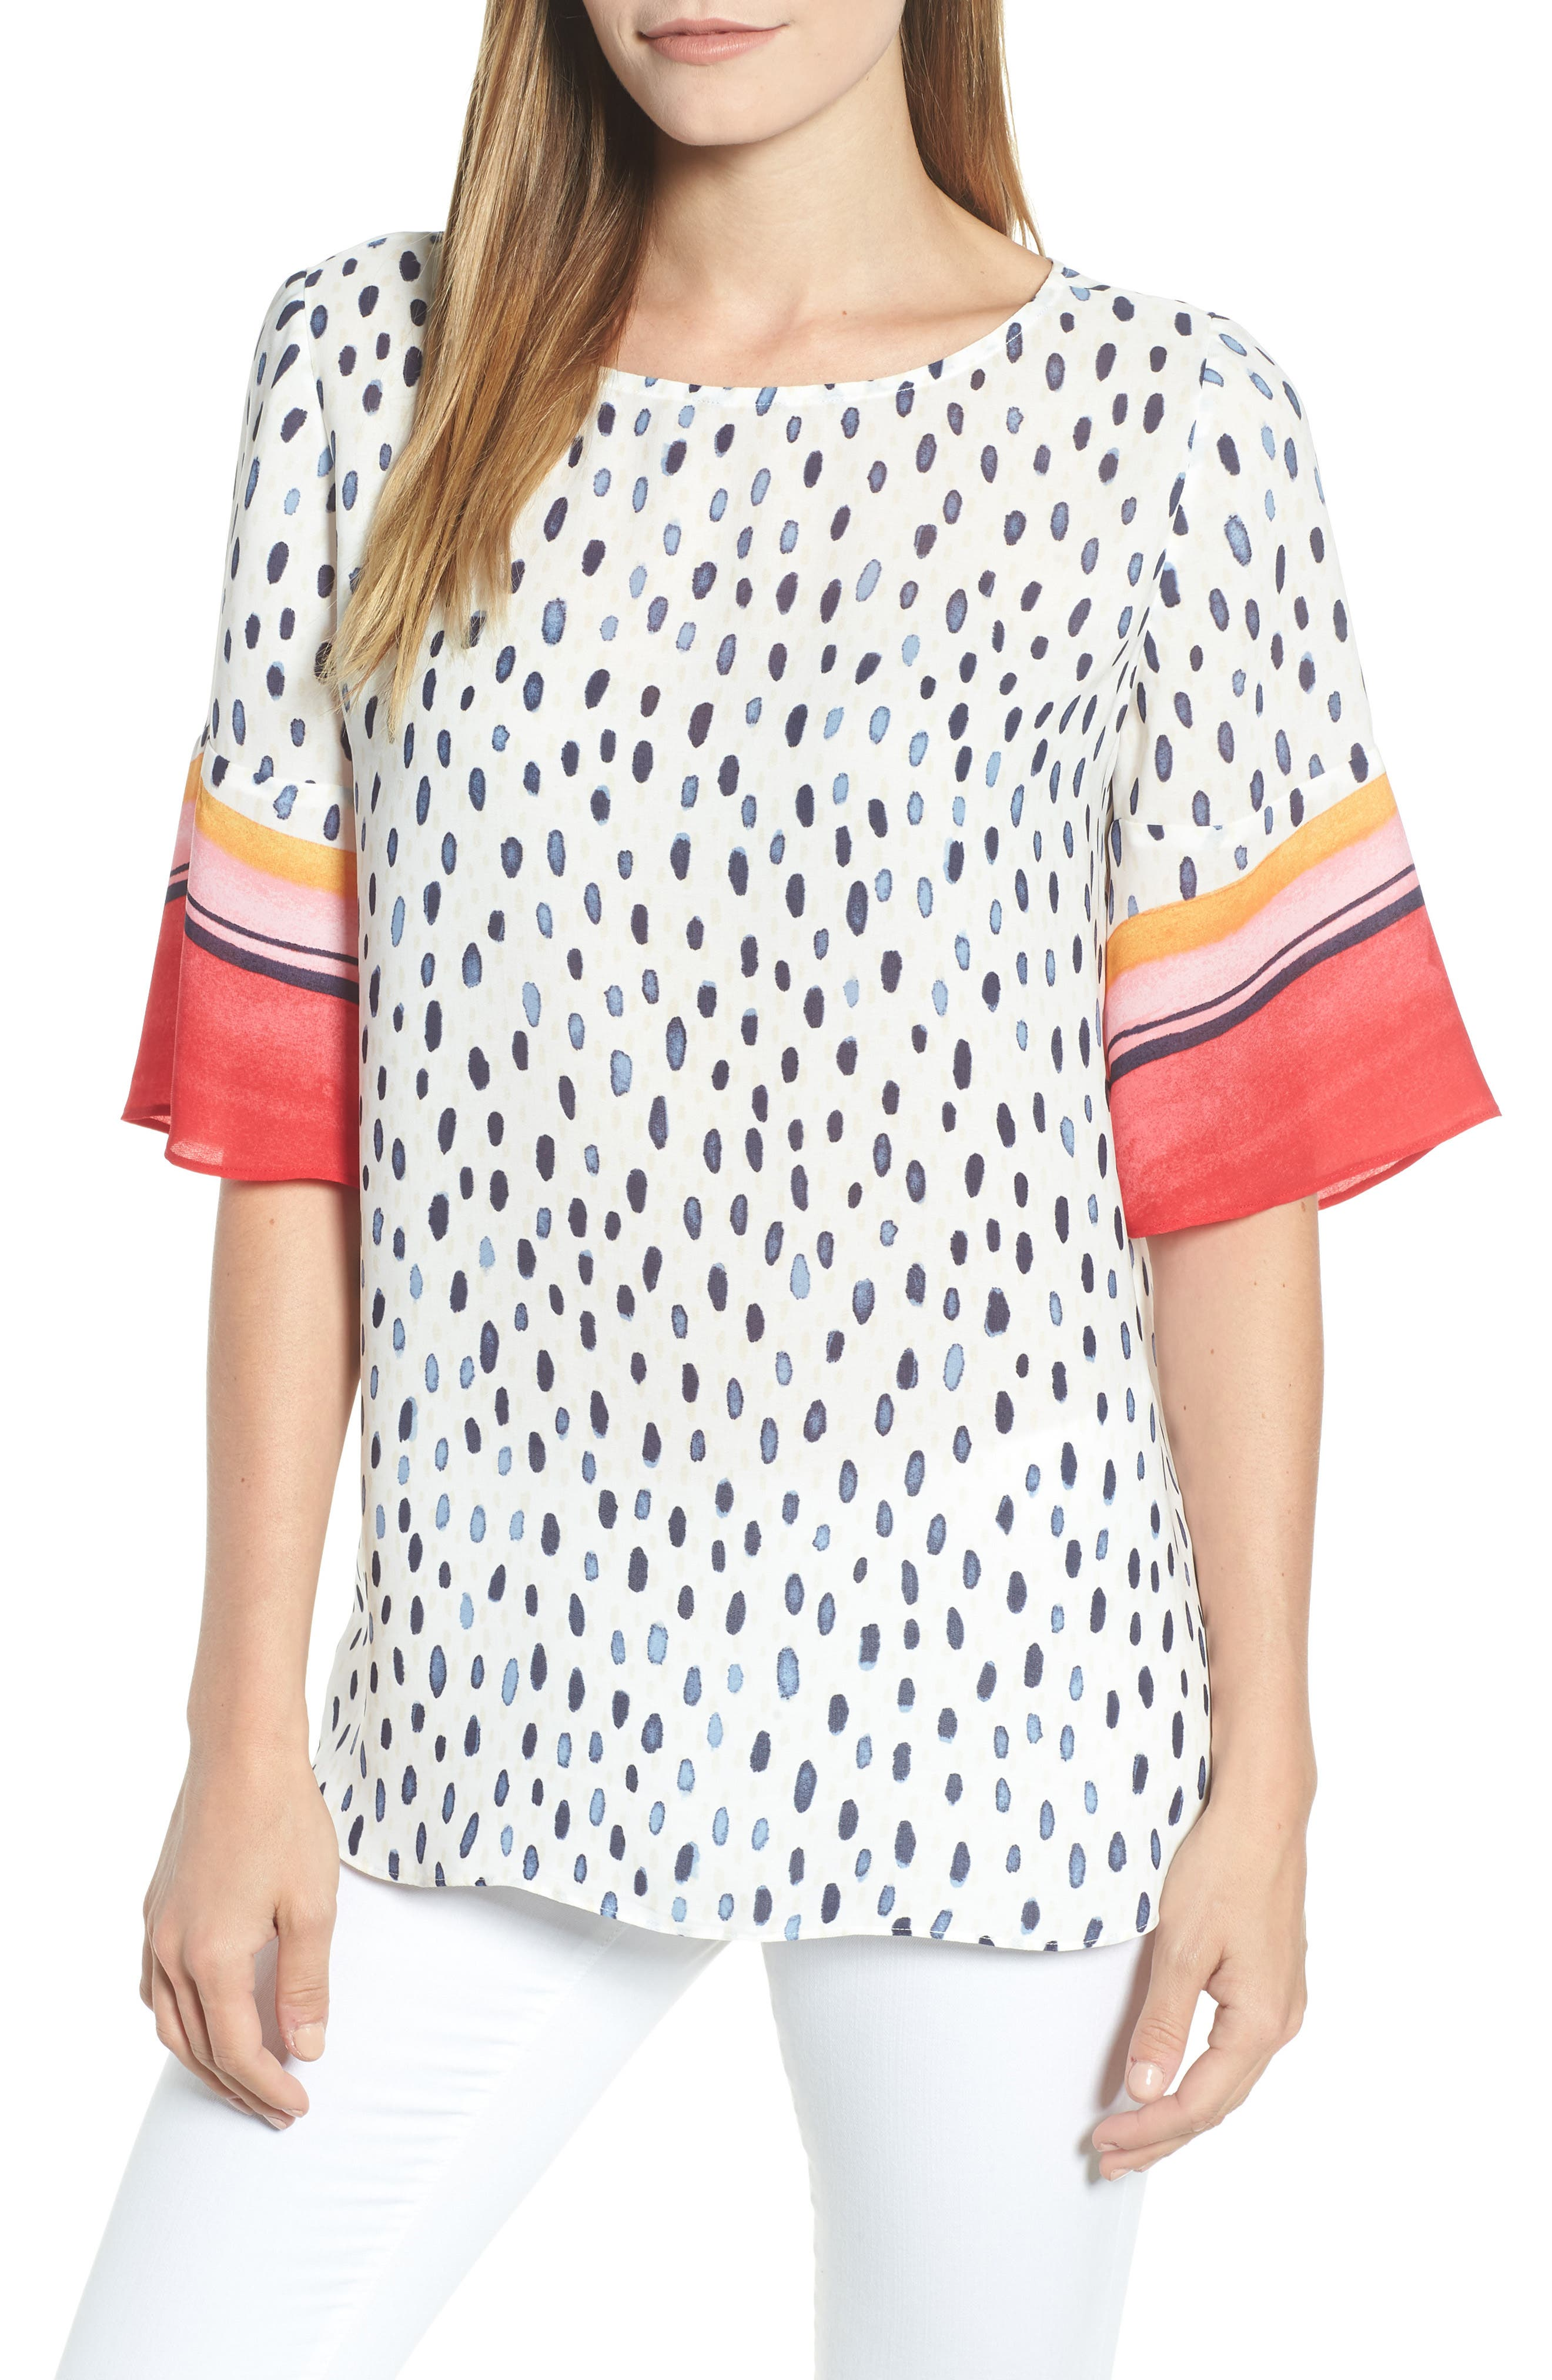 Merengue Top,                         Main,                         color, 190